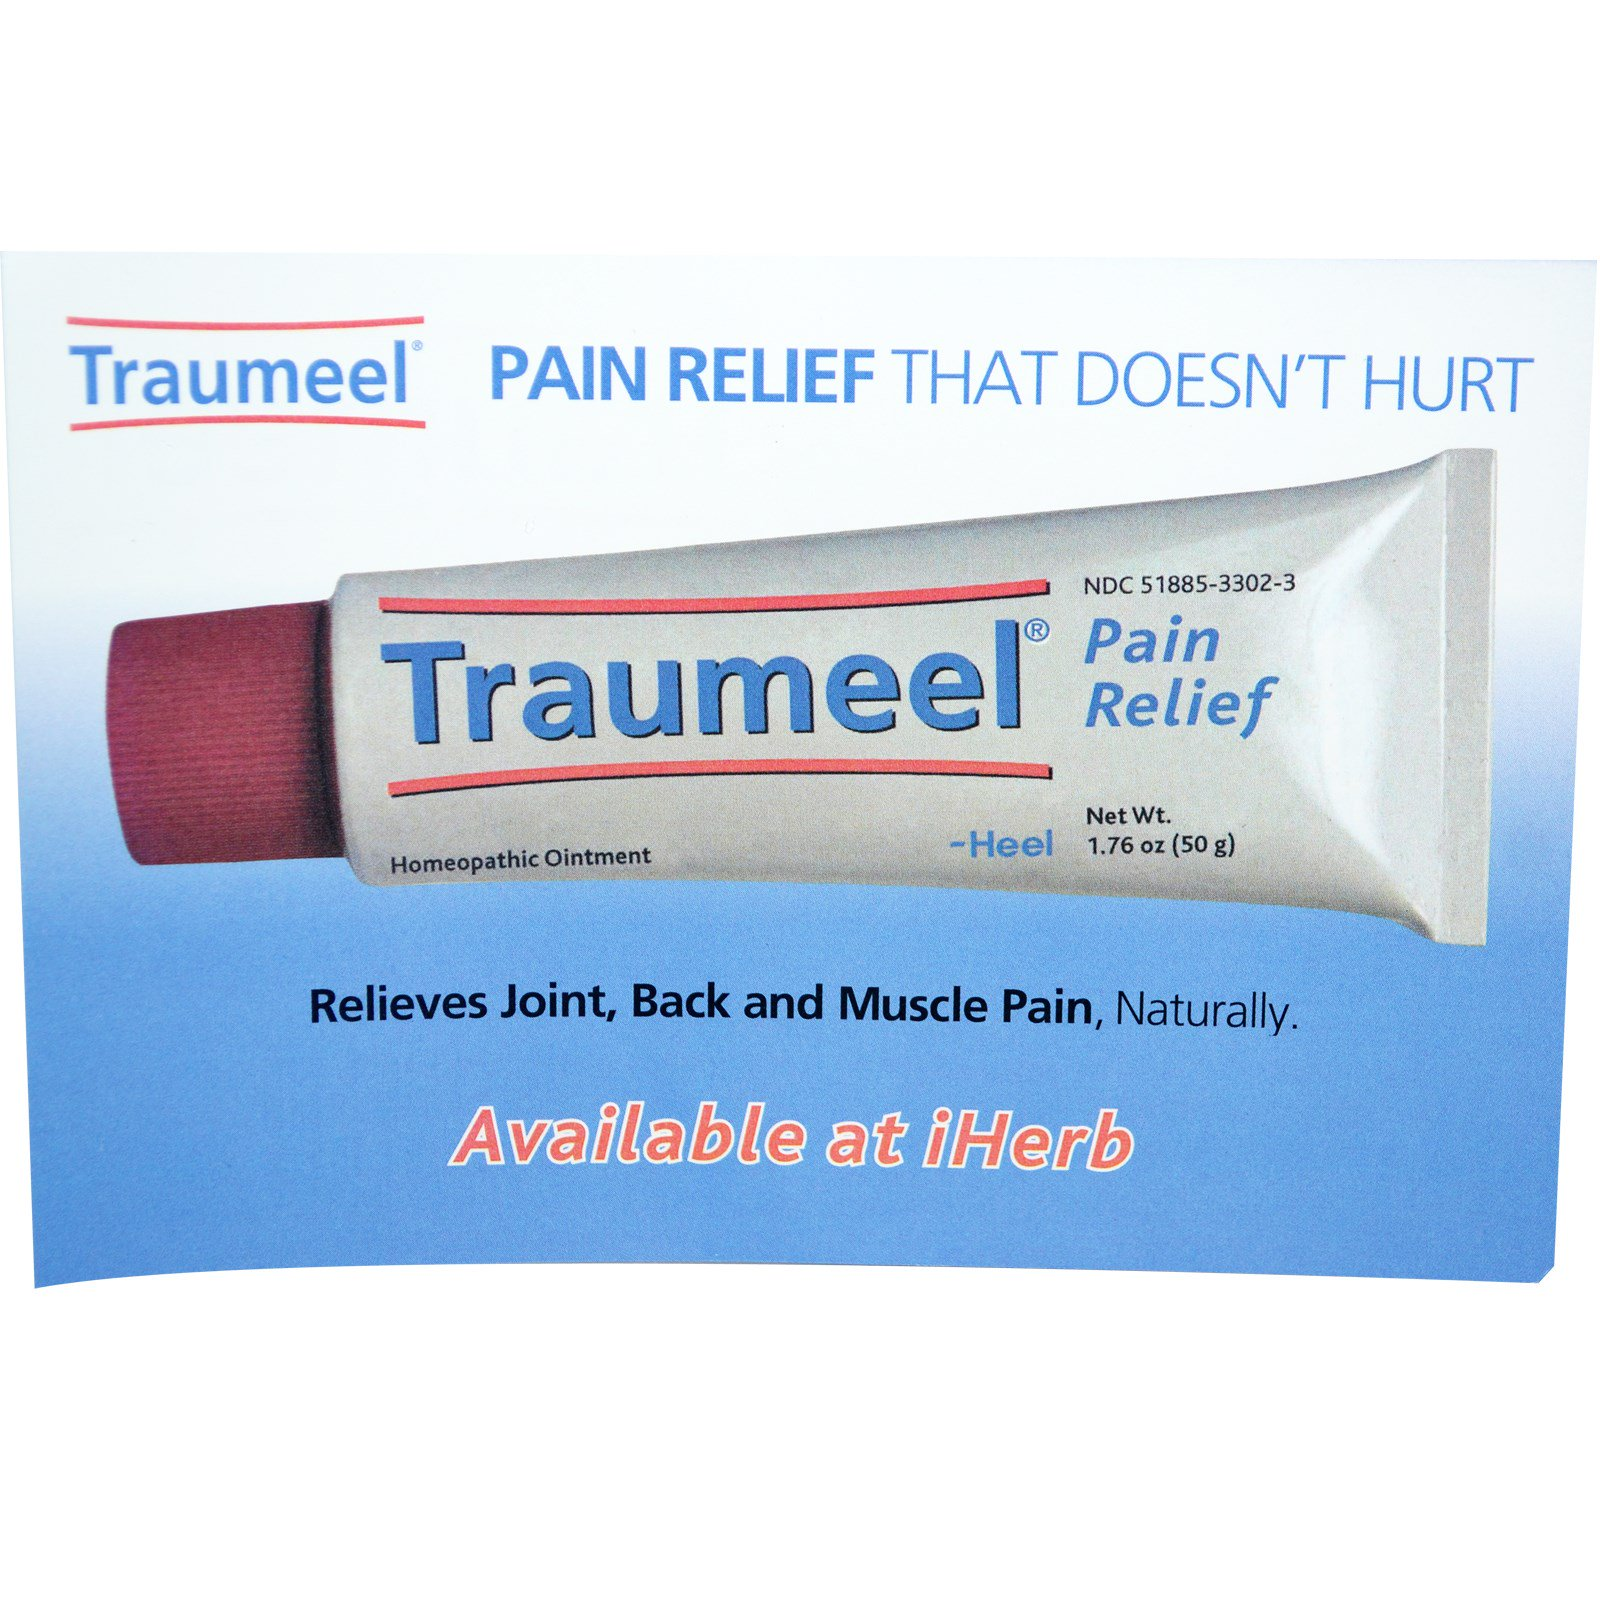 The drug Traumeel (ointment) - an effective homeopathic remedy 24